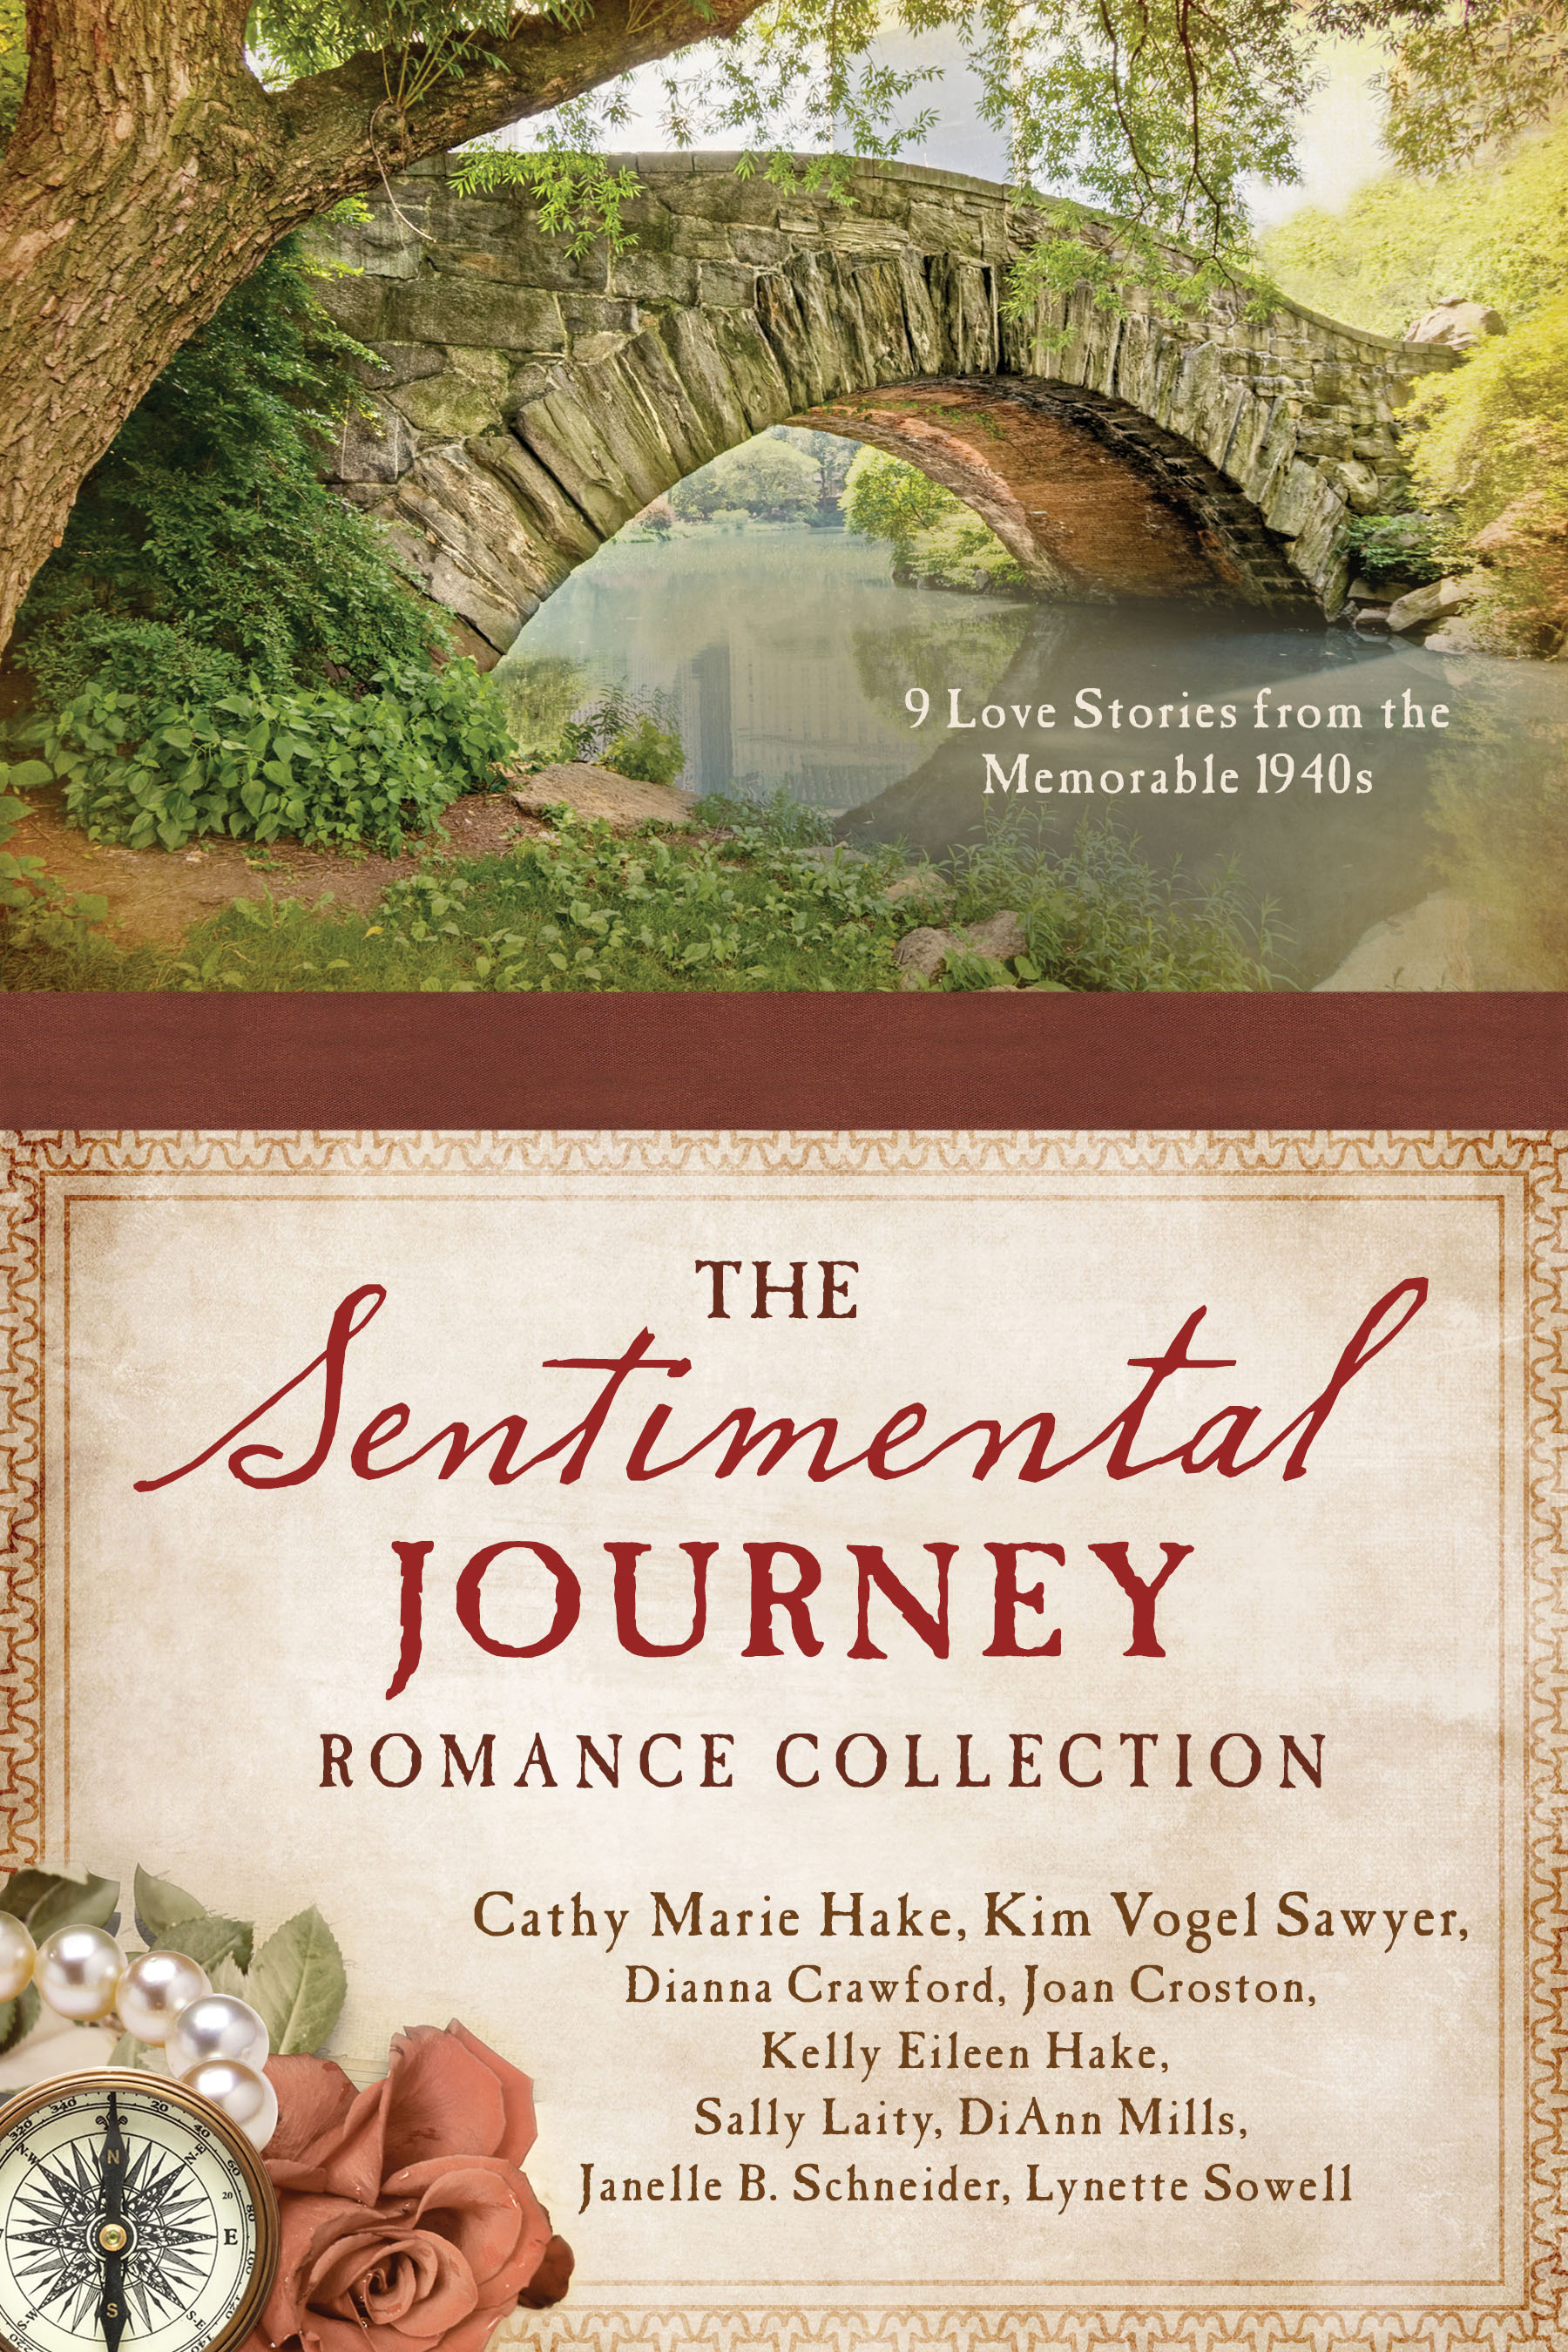 The sentimental journey romance collection